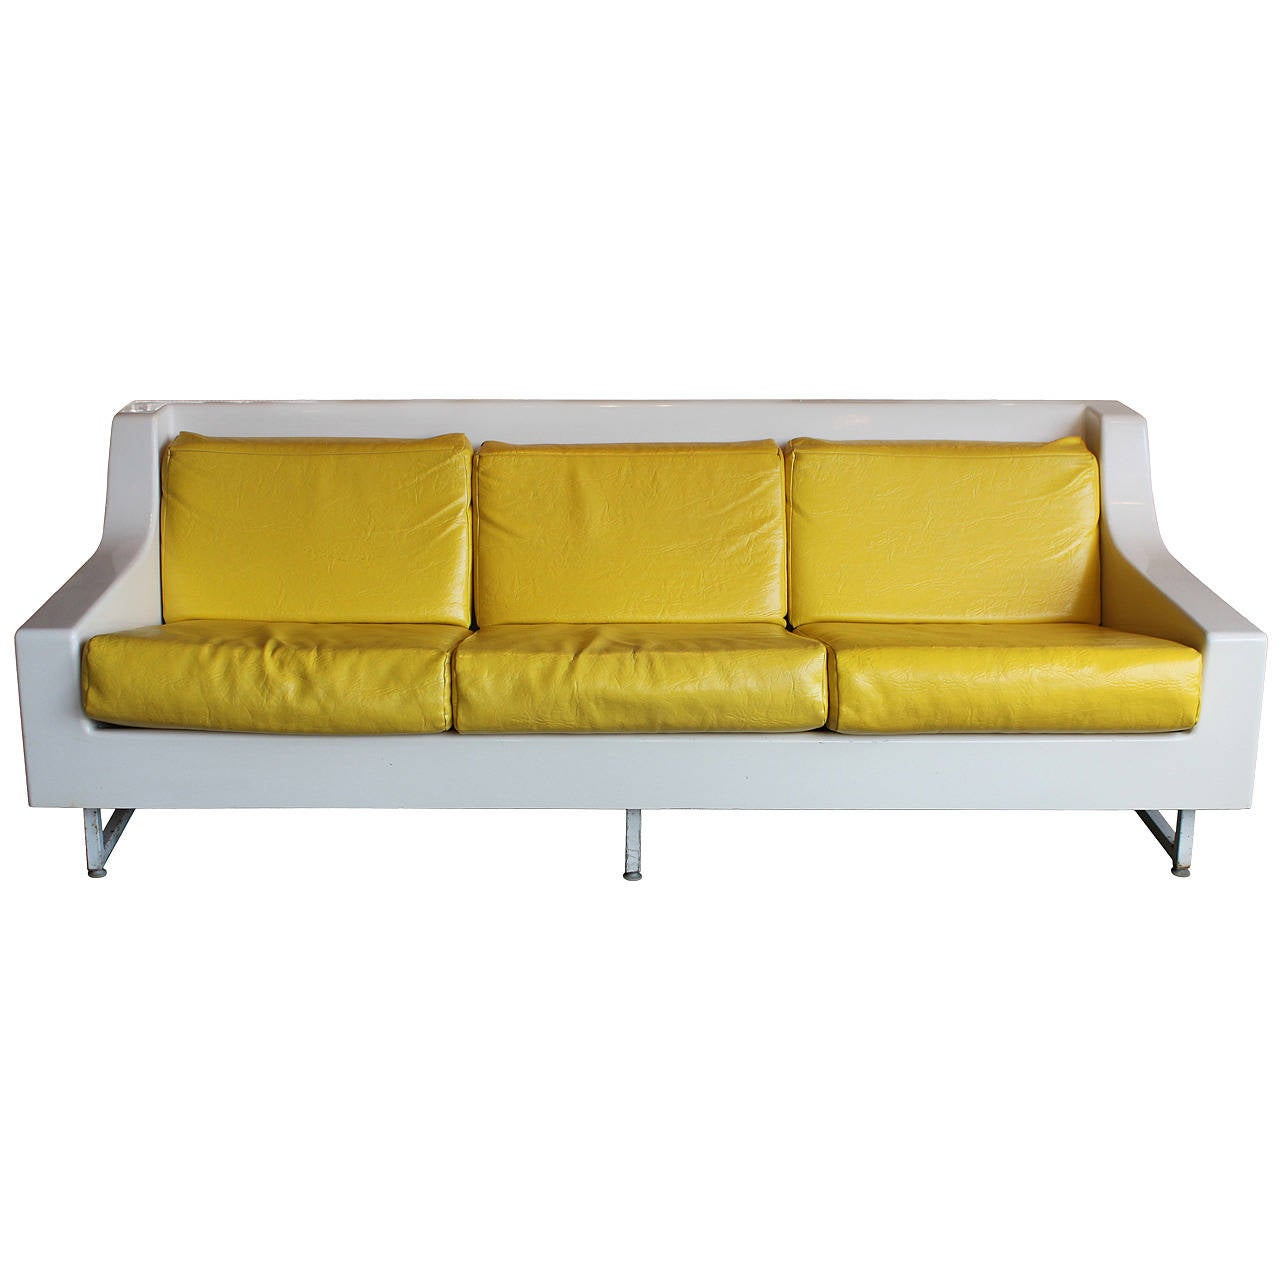 Modern outdoor or indoor sofa for sale at 1stdibs for New sofas for sale